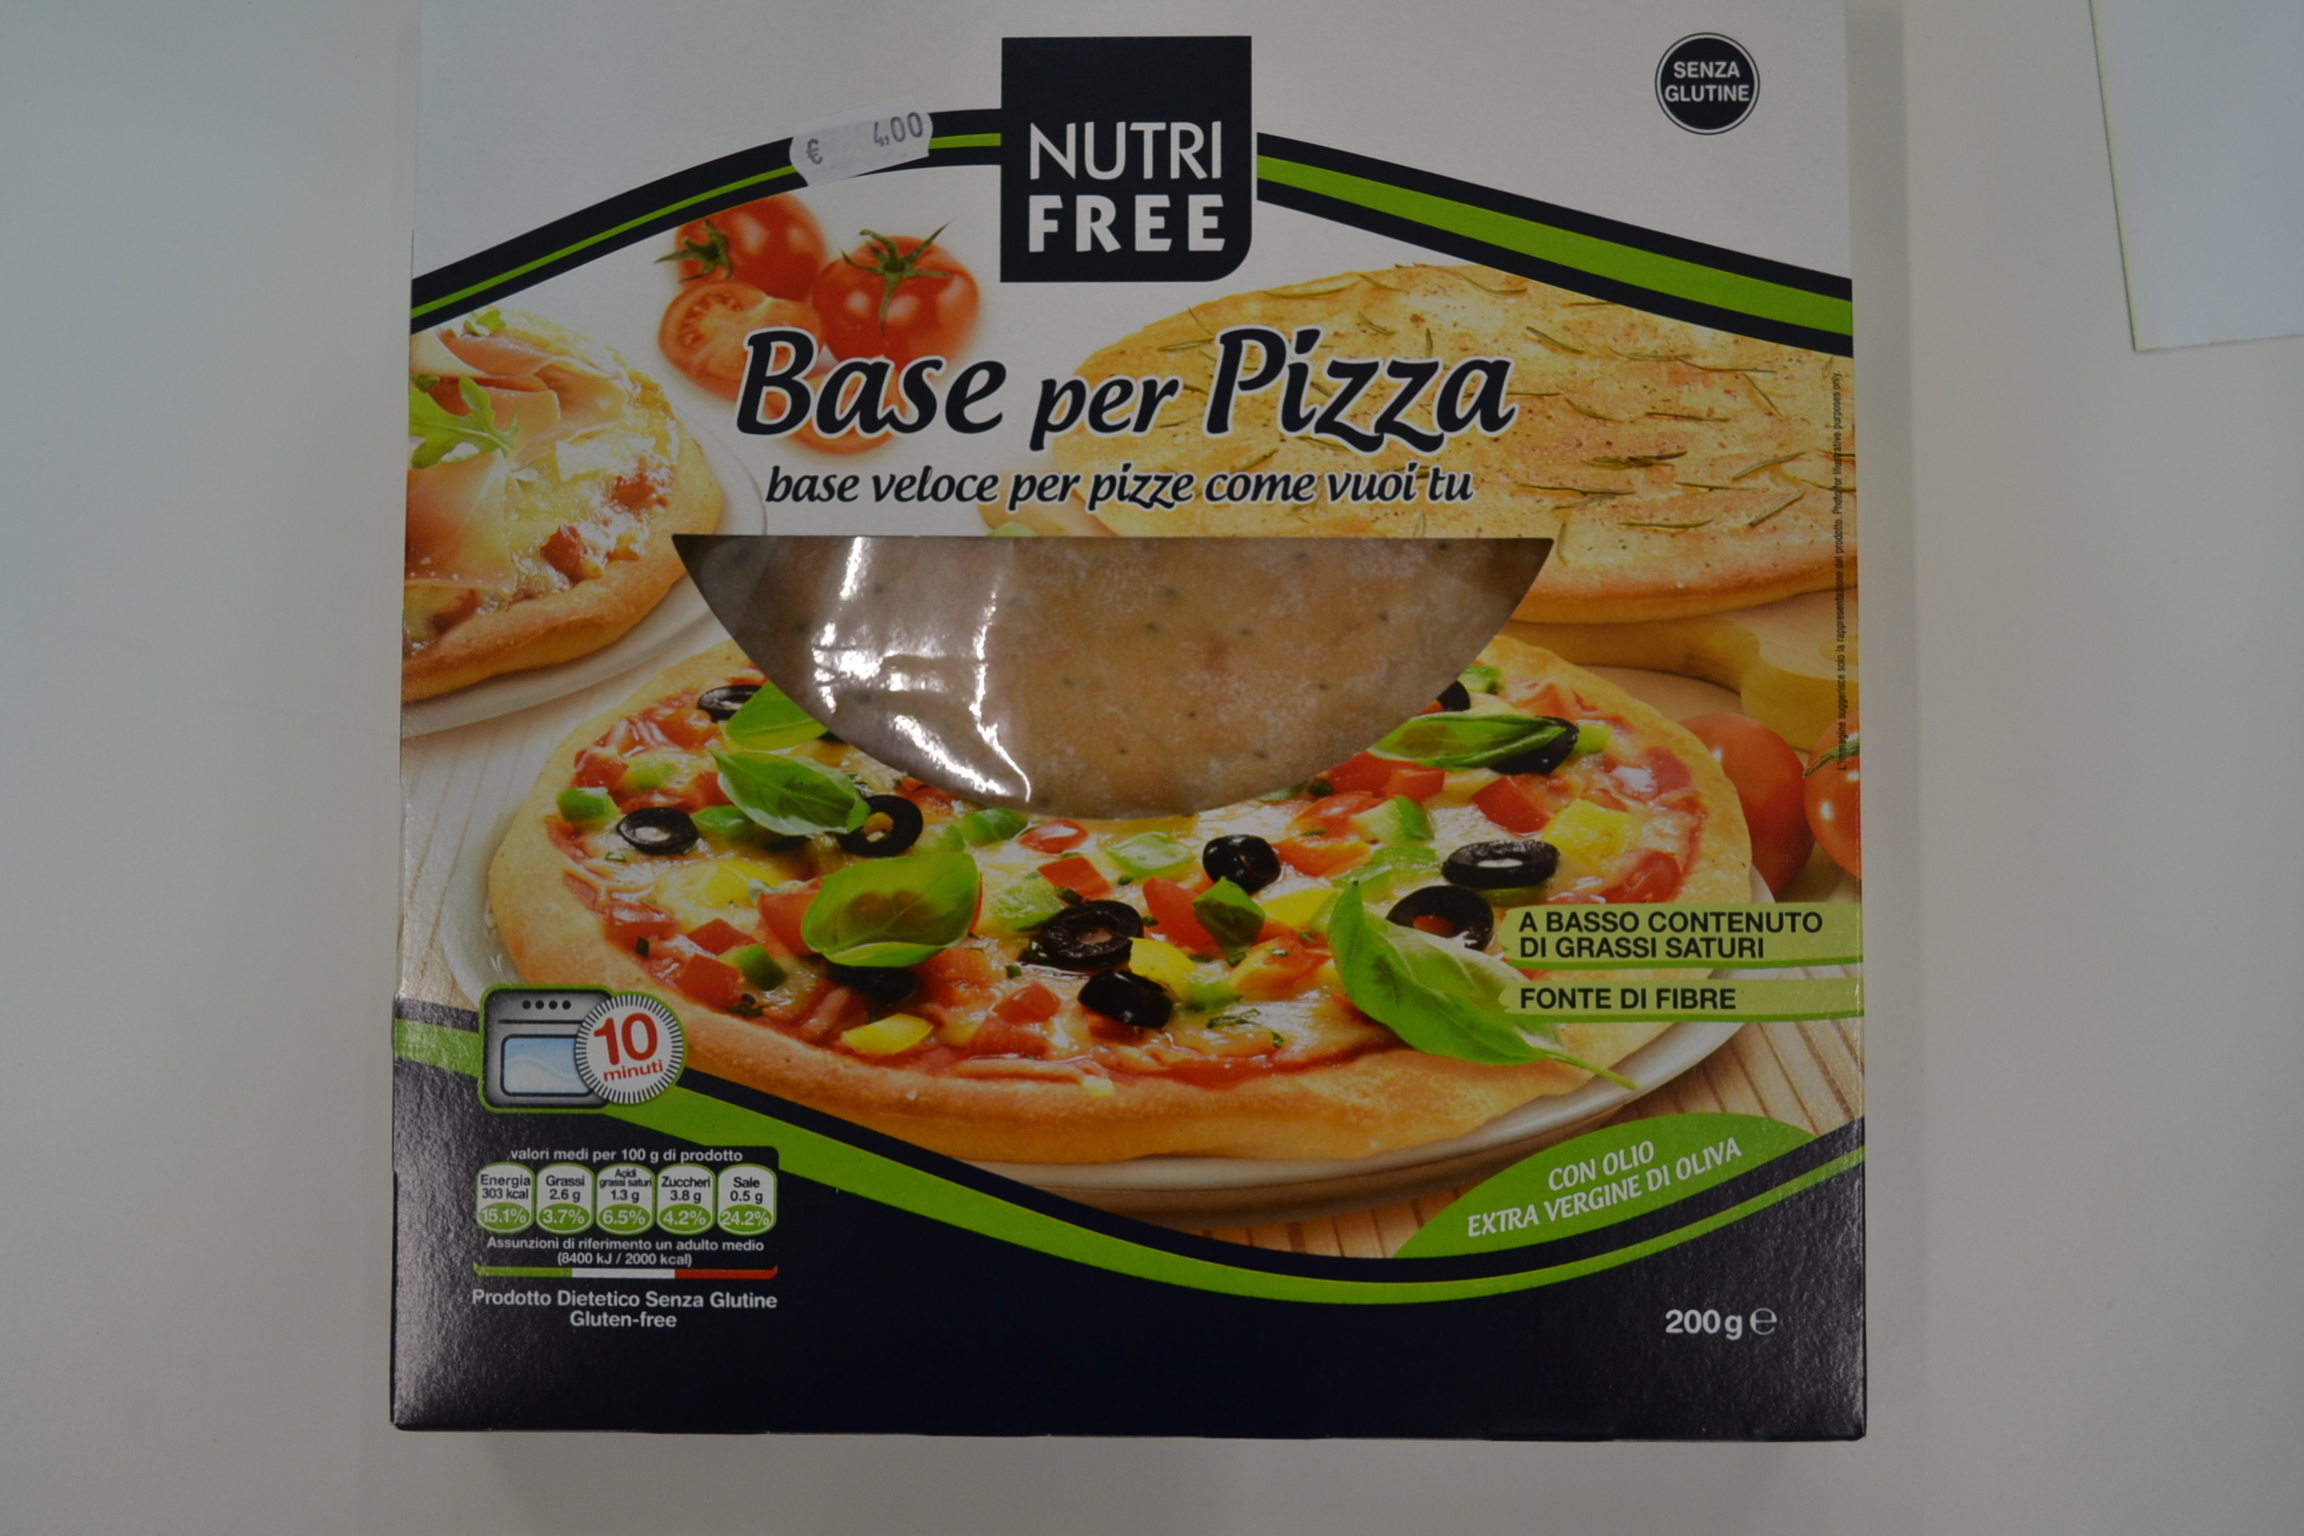 Base per pizza NUTRIFREE € 4,00